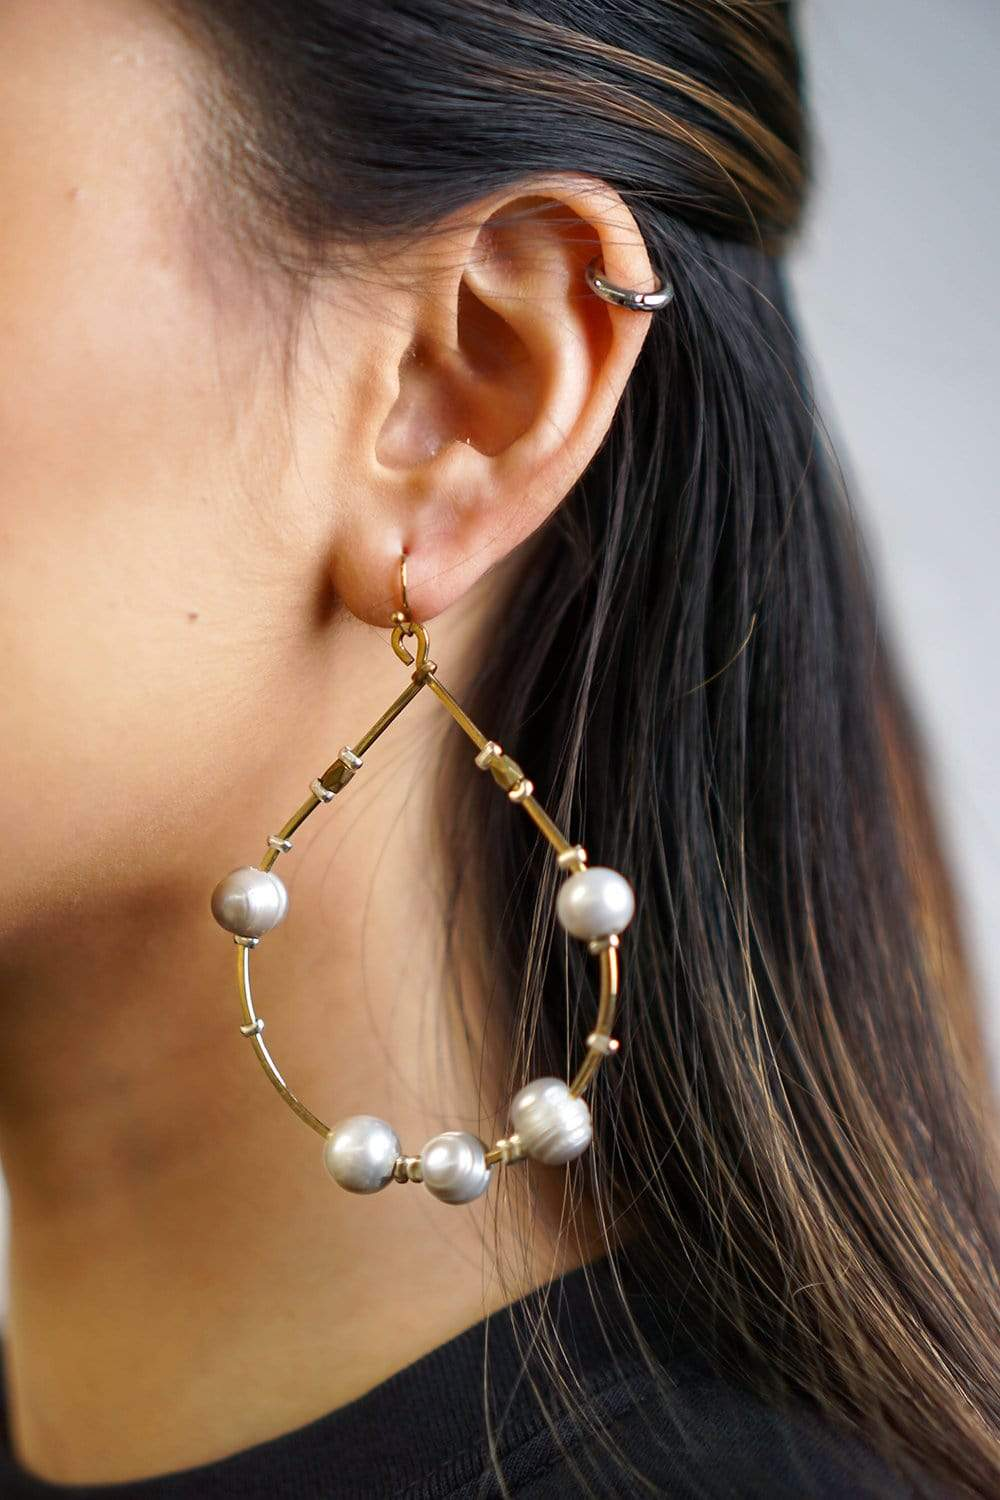 NAK EARRING Grey Pearl Wired Hoop Earrings